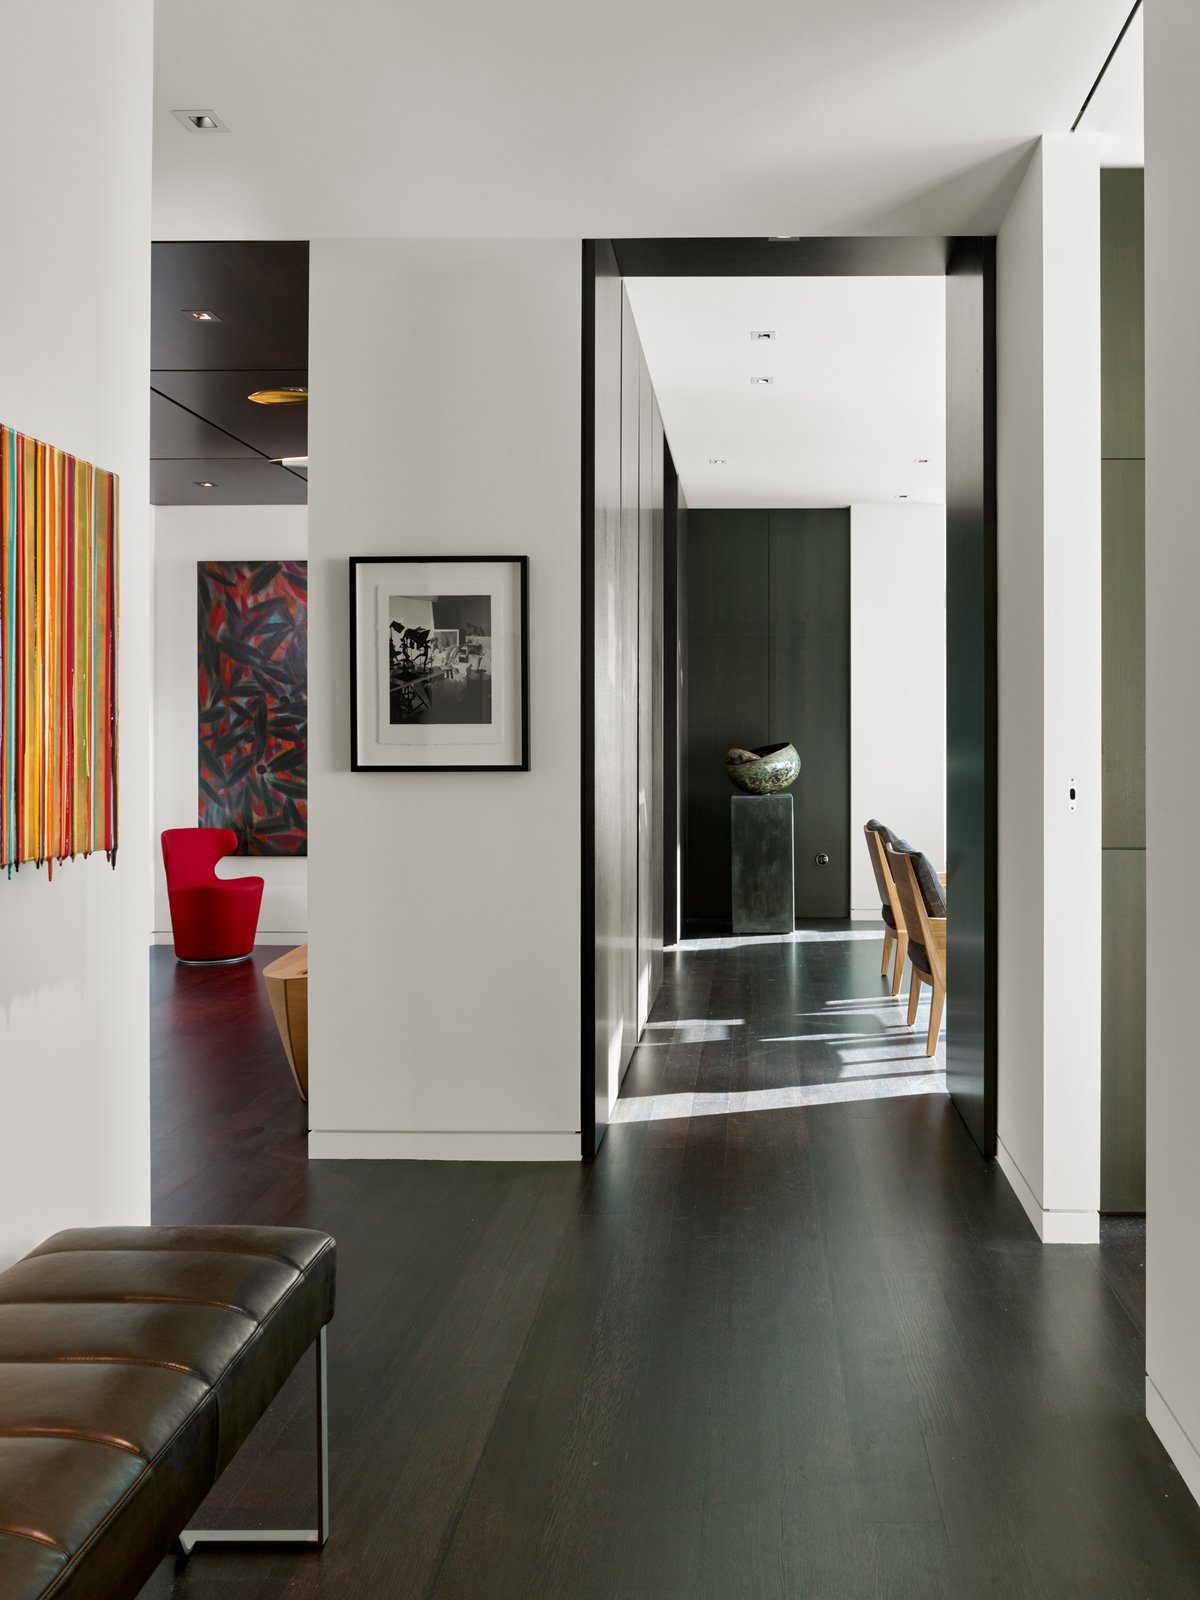 Sky Gallery Residence by Knock Architecture + Design